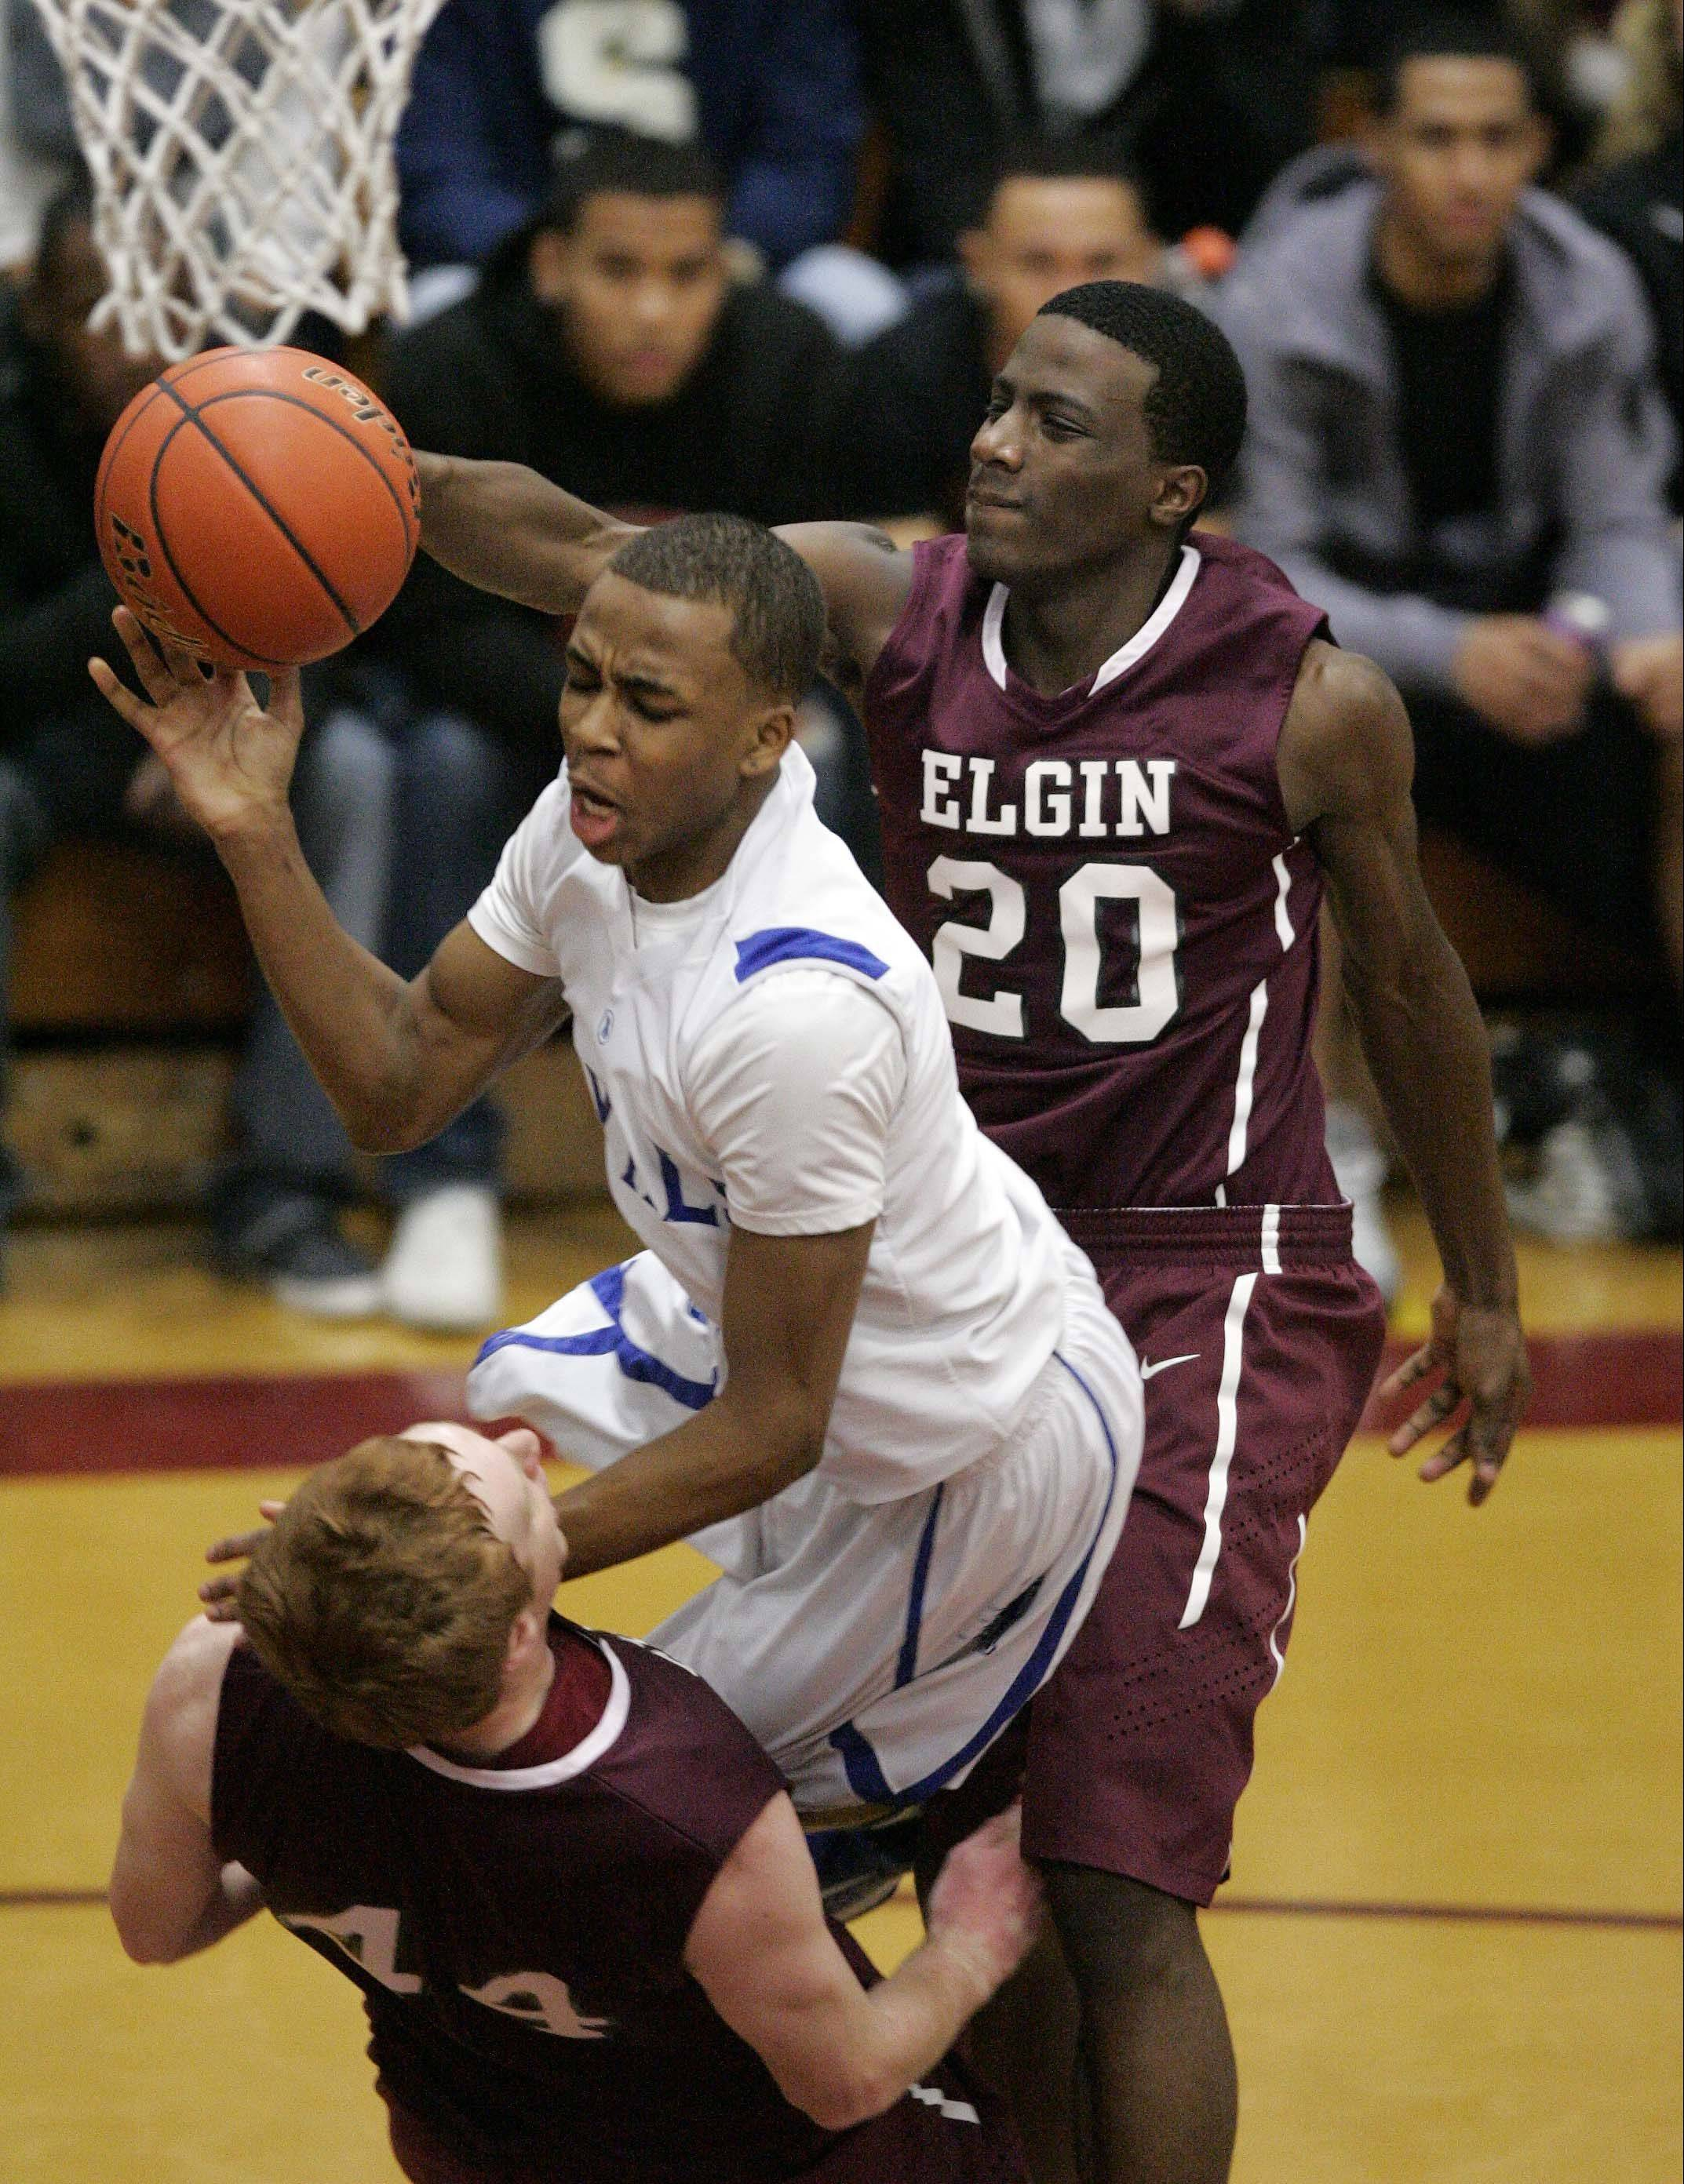 Larkin's Quantice Hunter (1) goes hard to the hoop as Elgin's Eric Sedlack stands strong during the championship game of the Elgin Holiday Tournament Saturday.